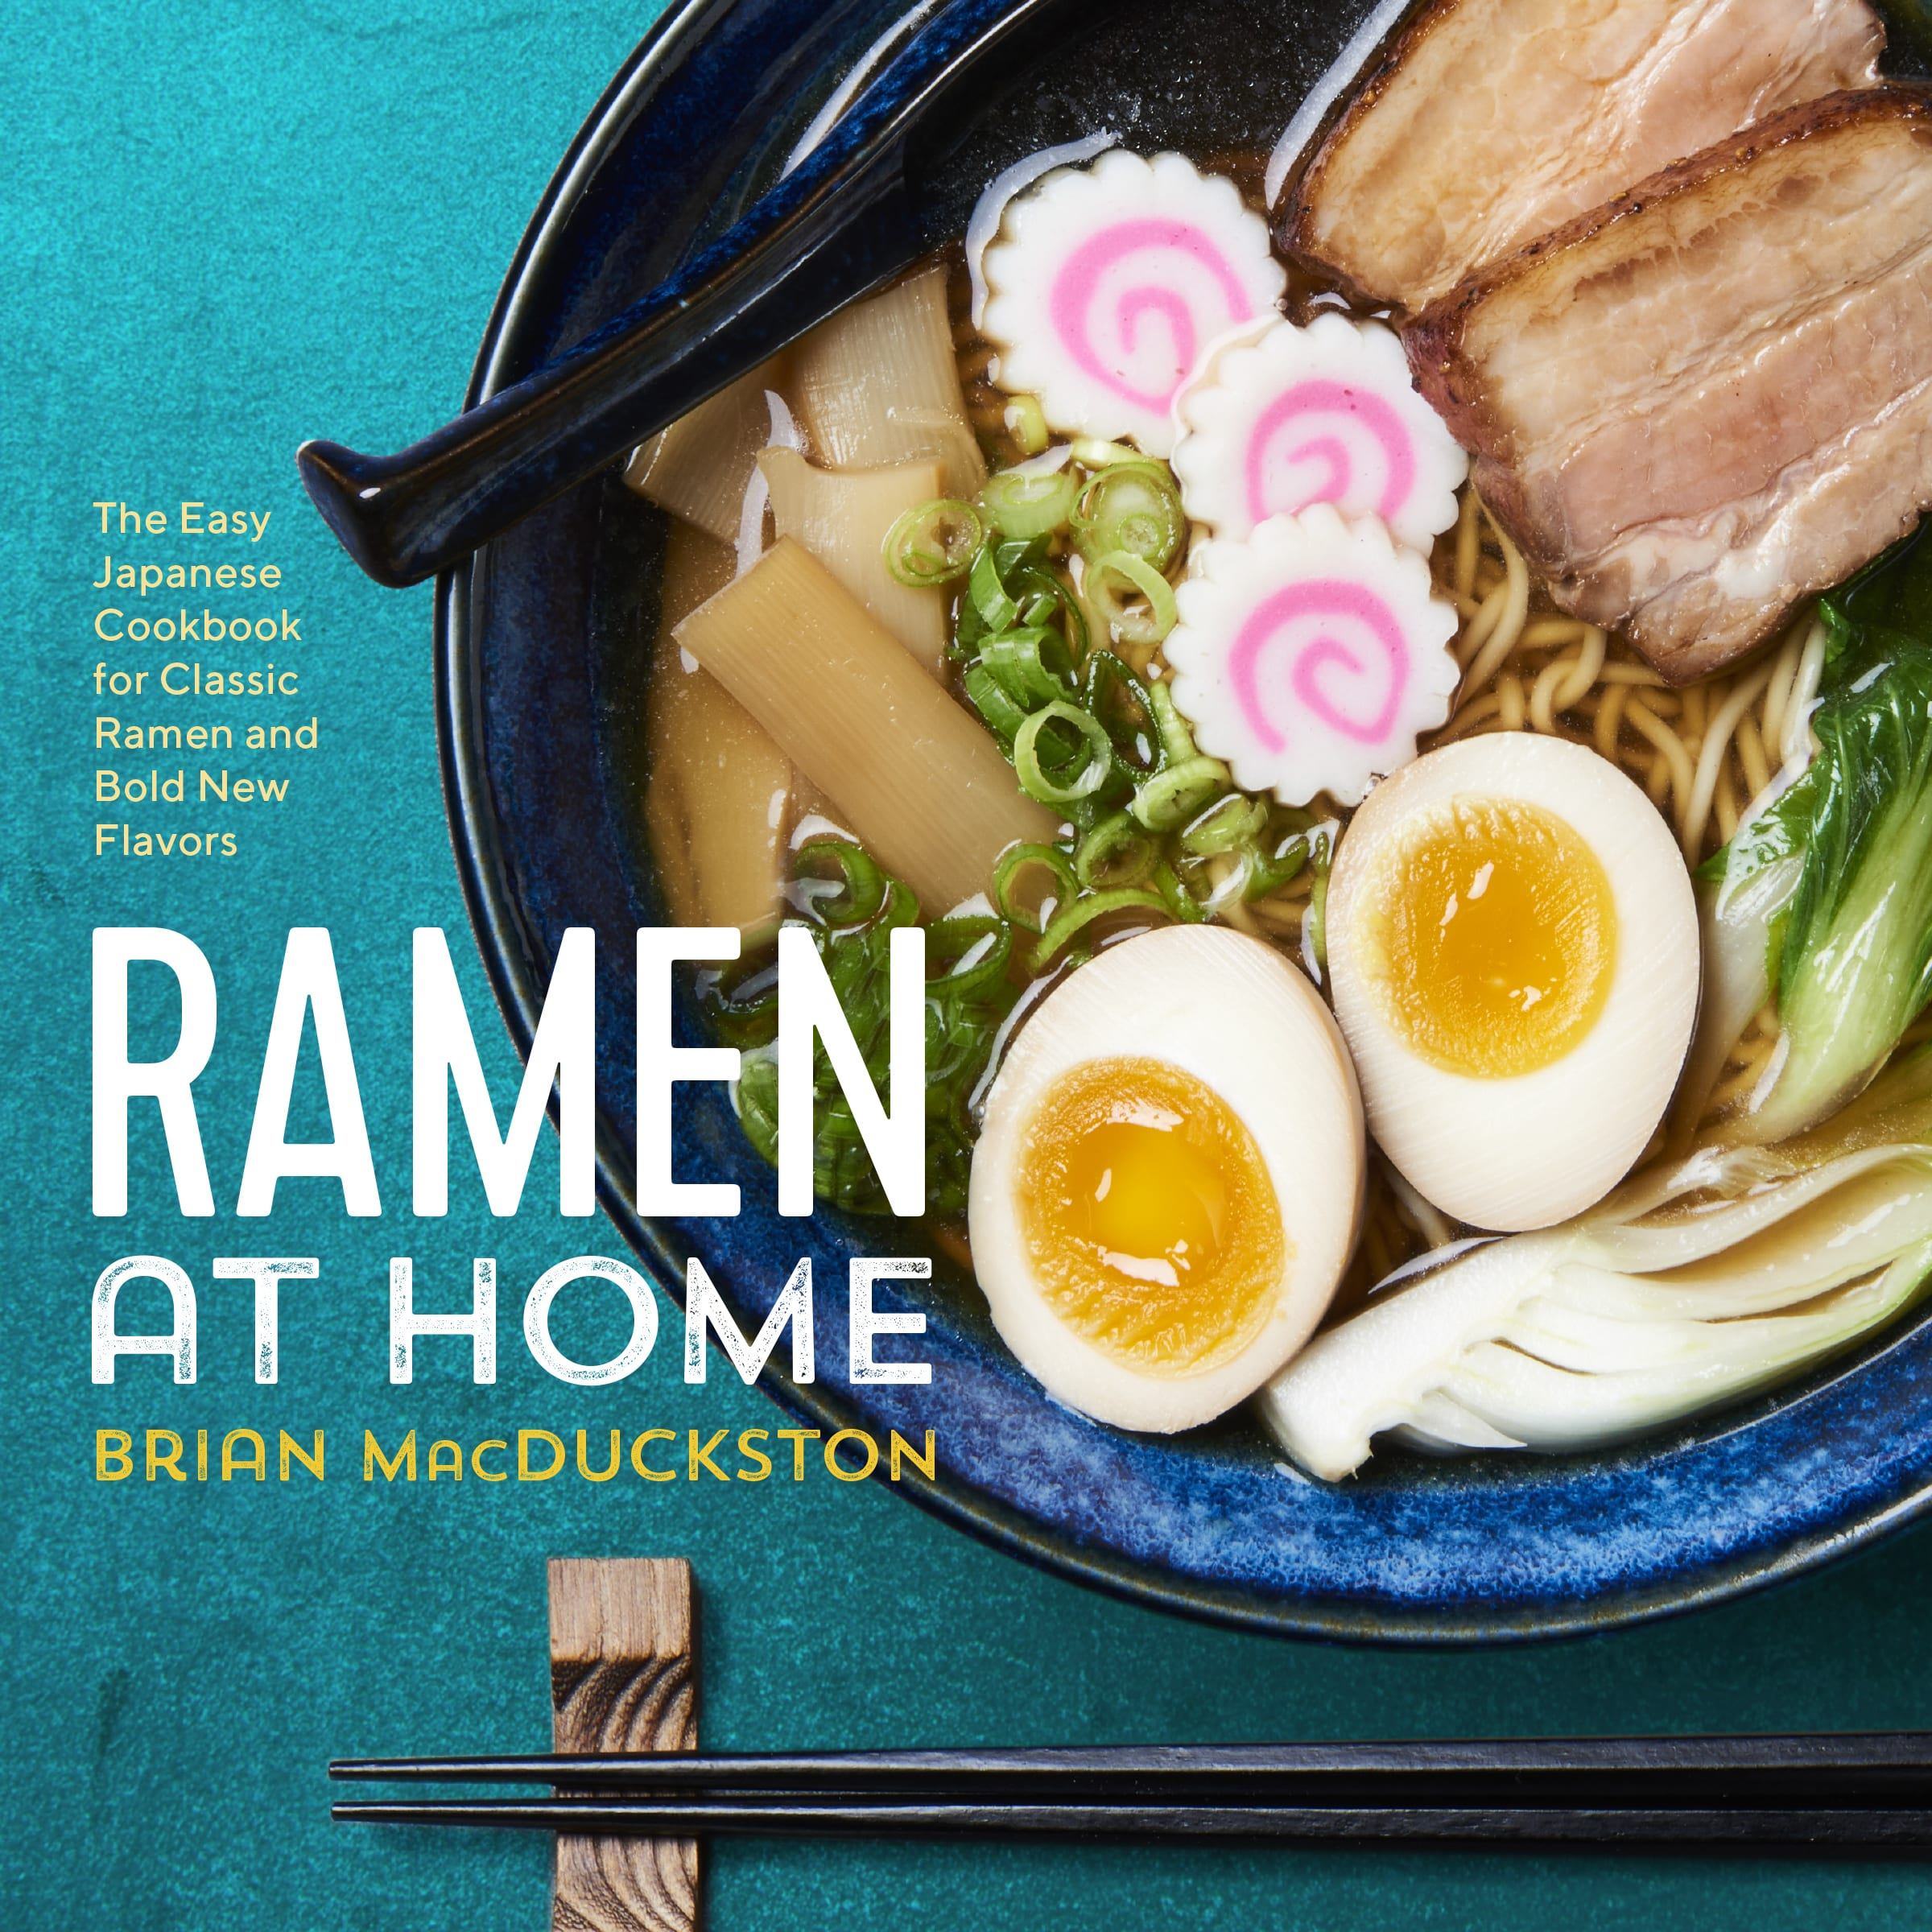 Review: Ramen At Home by Brian MacDuckston